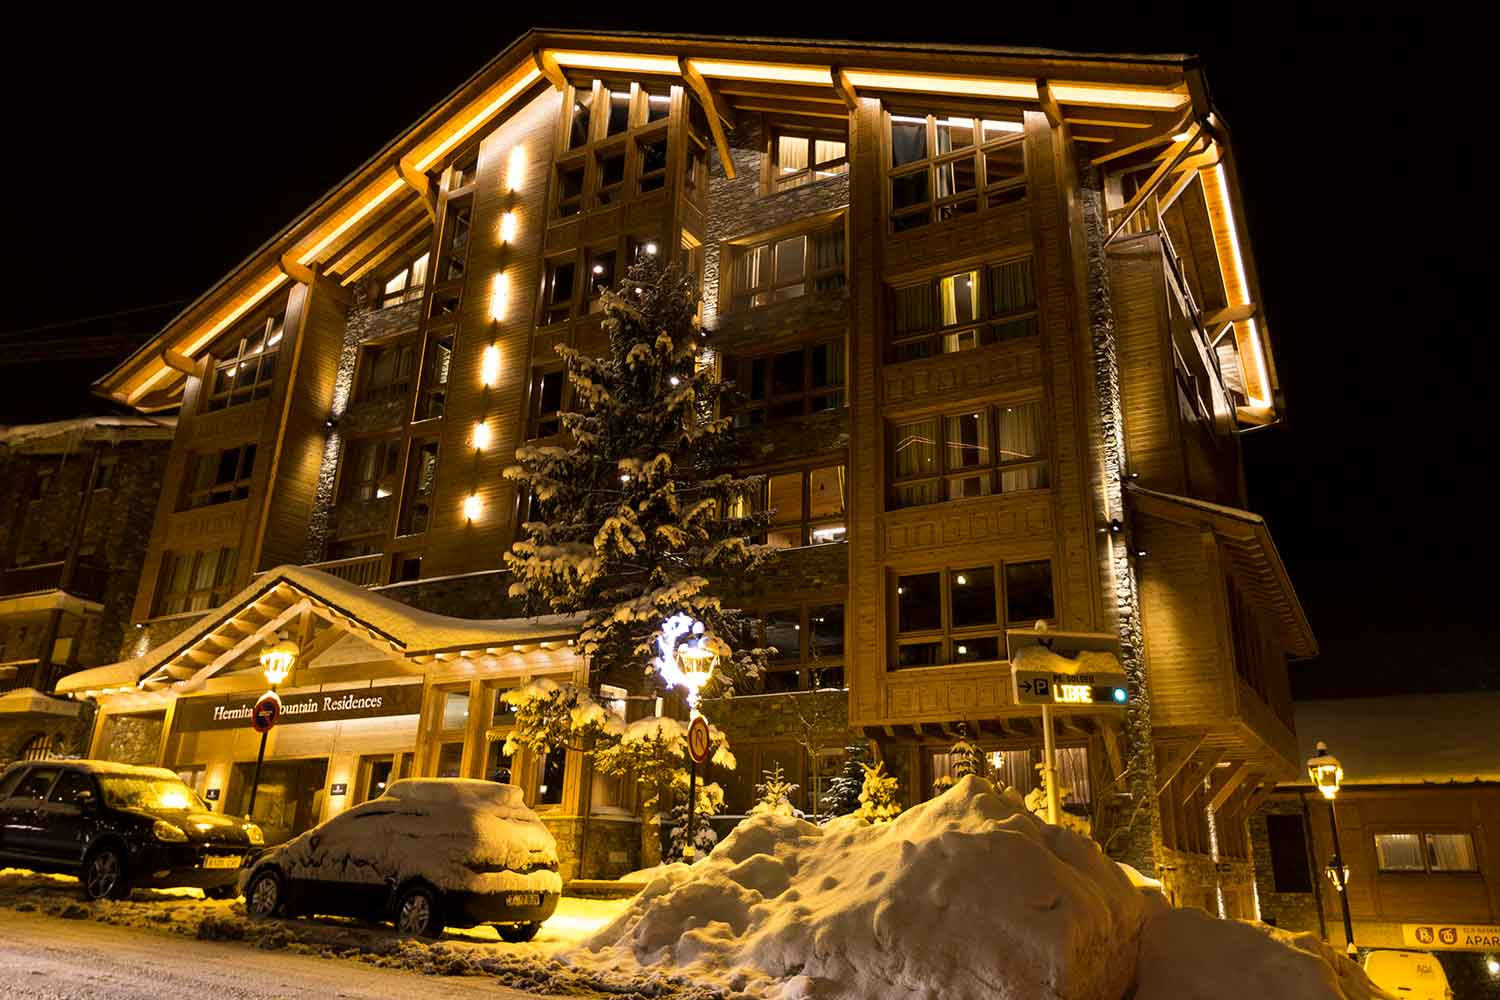 Hermitage Mountain Residences | Alojamientos de Lujo en Soldeu The Leading Hotels of the World